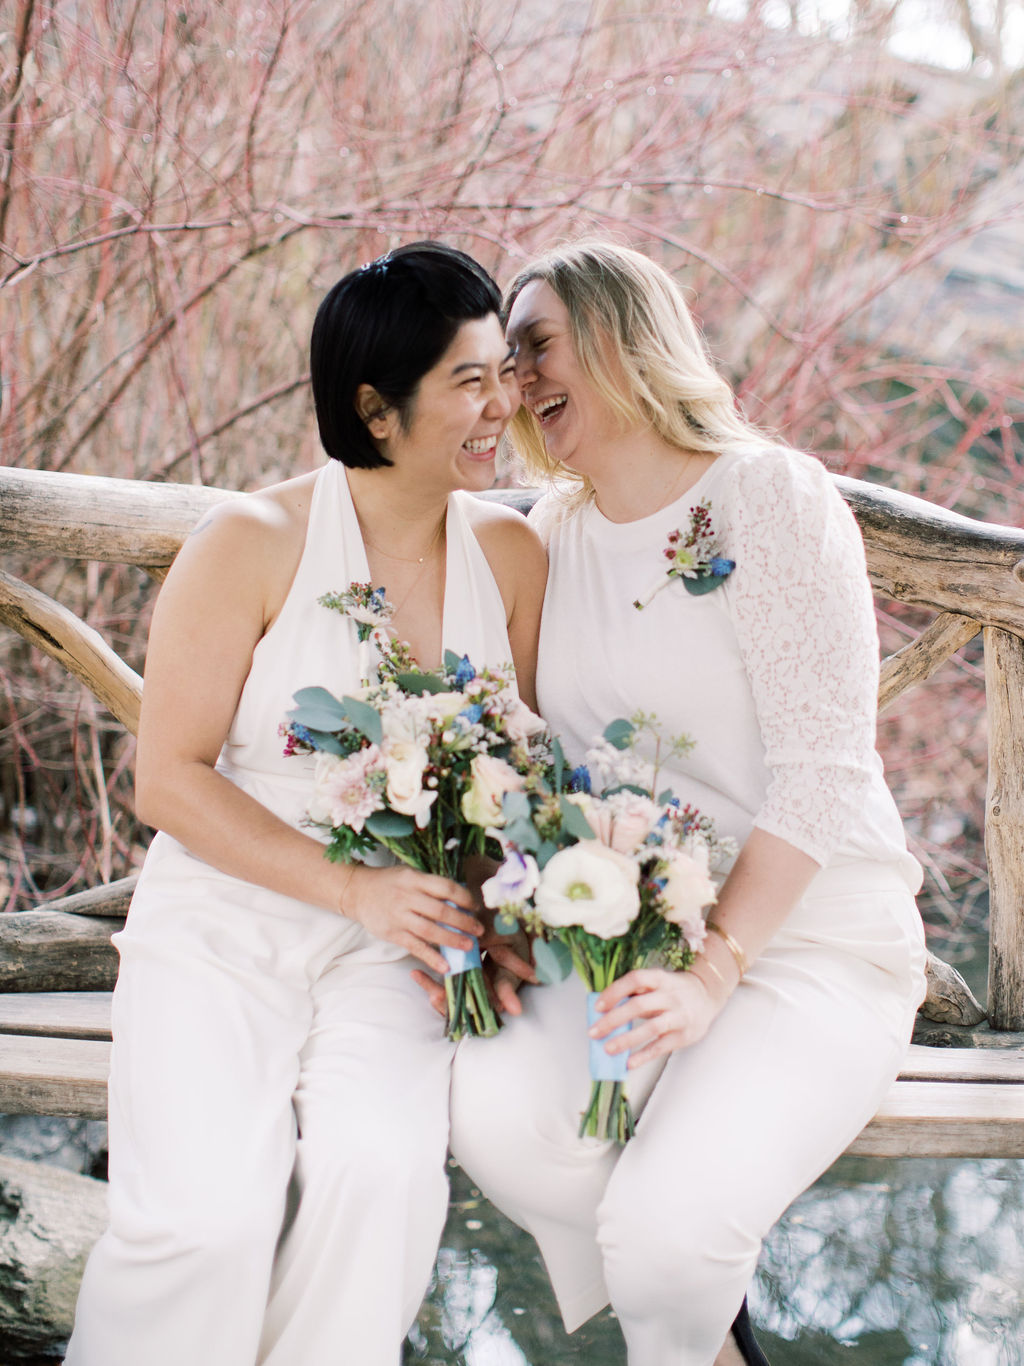 Post elopement ceremony, two brides sitting on natural wooden bench near Bow Bridge holding their bouquets; both appear to be laughing and giggling as if sharing a funny joke.